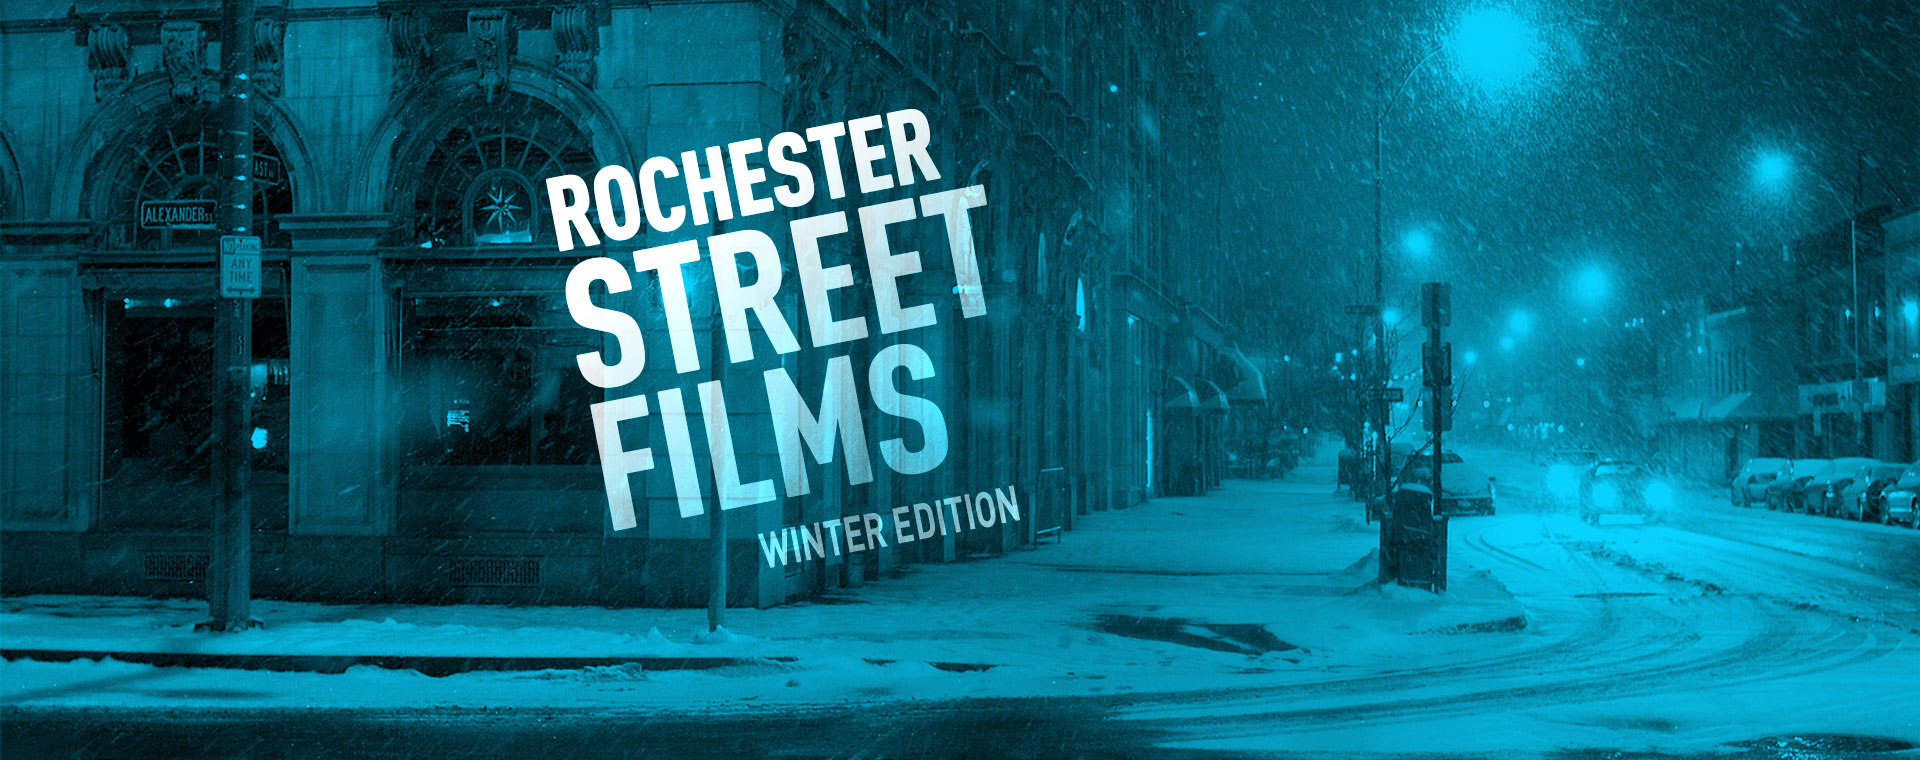 Rochester Street Films - Winter Edition